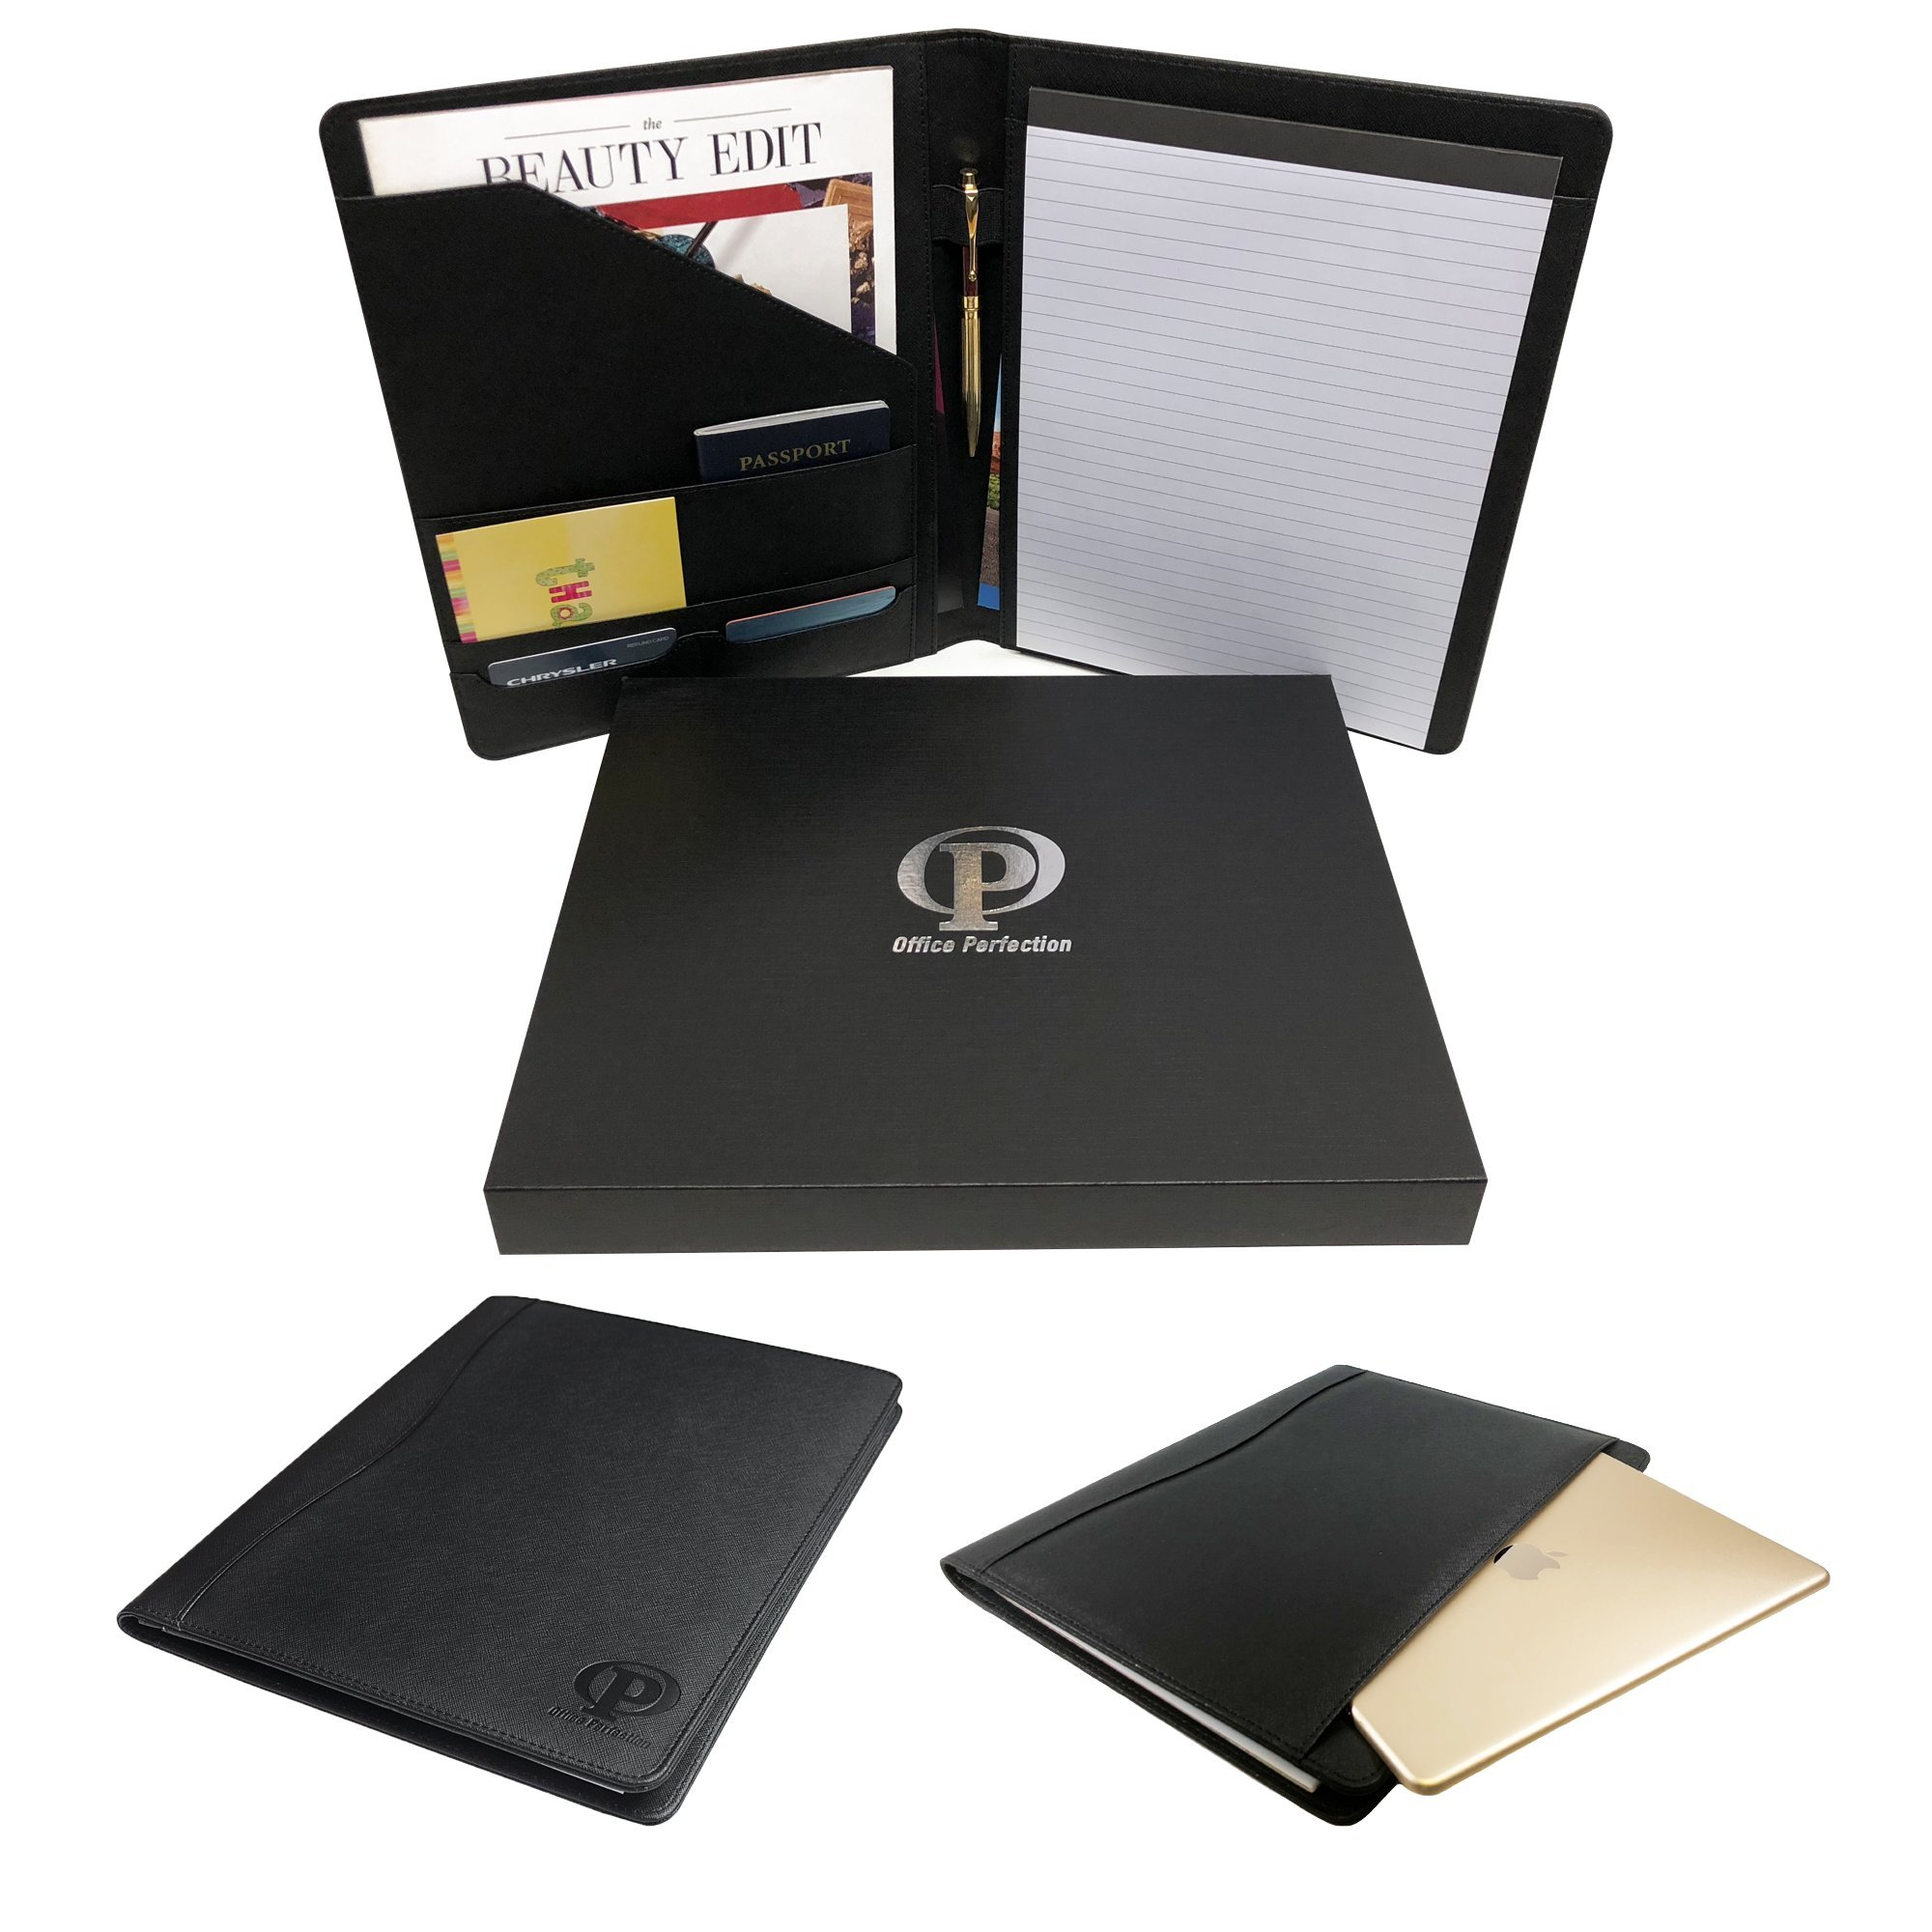 """Professional Padfolio - Document Resume Organizer - Business Card/Credit Card Holder with Notebook - ipad/Tablet Pocket Fit up to 9.7"""" - Premium PU Leather (Office Perfection)"""